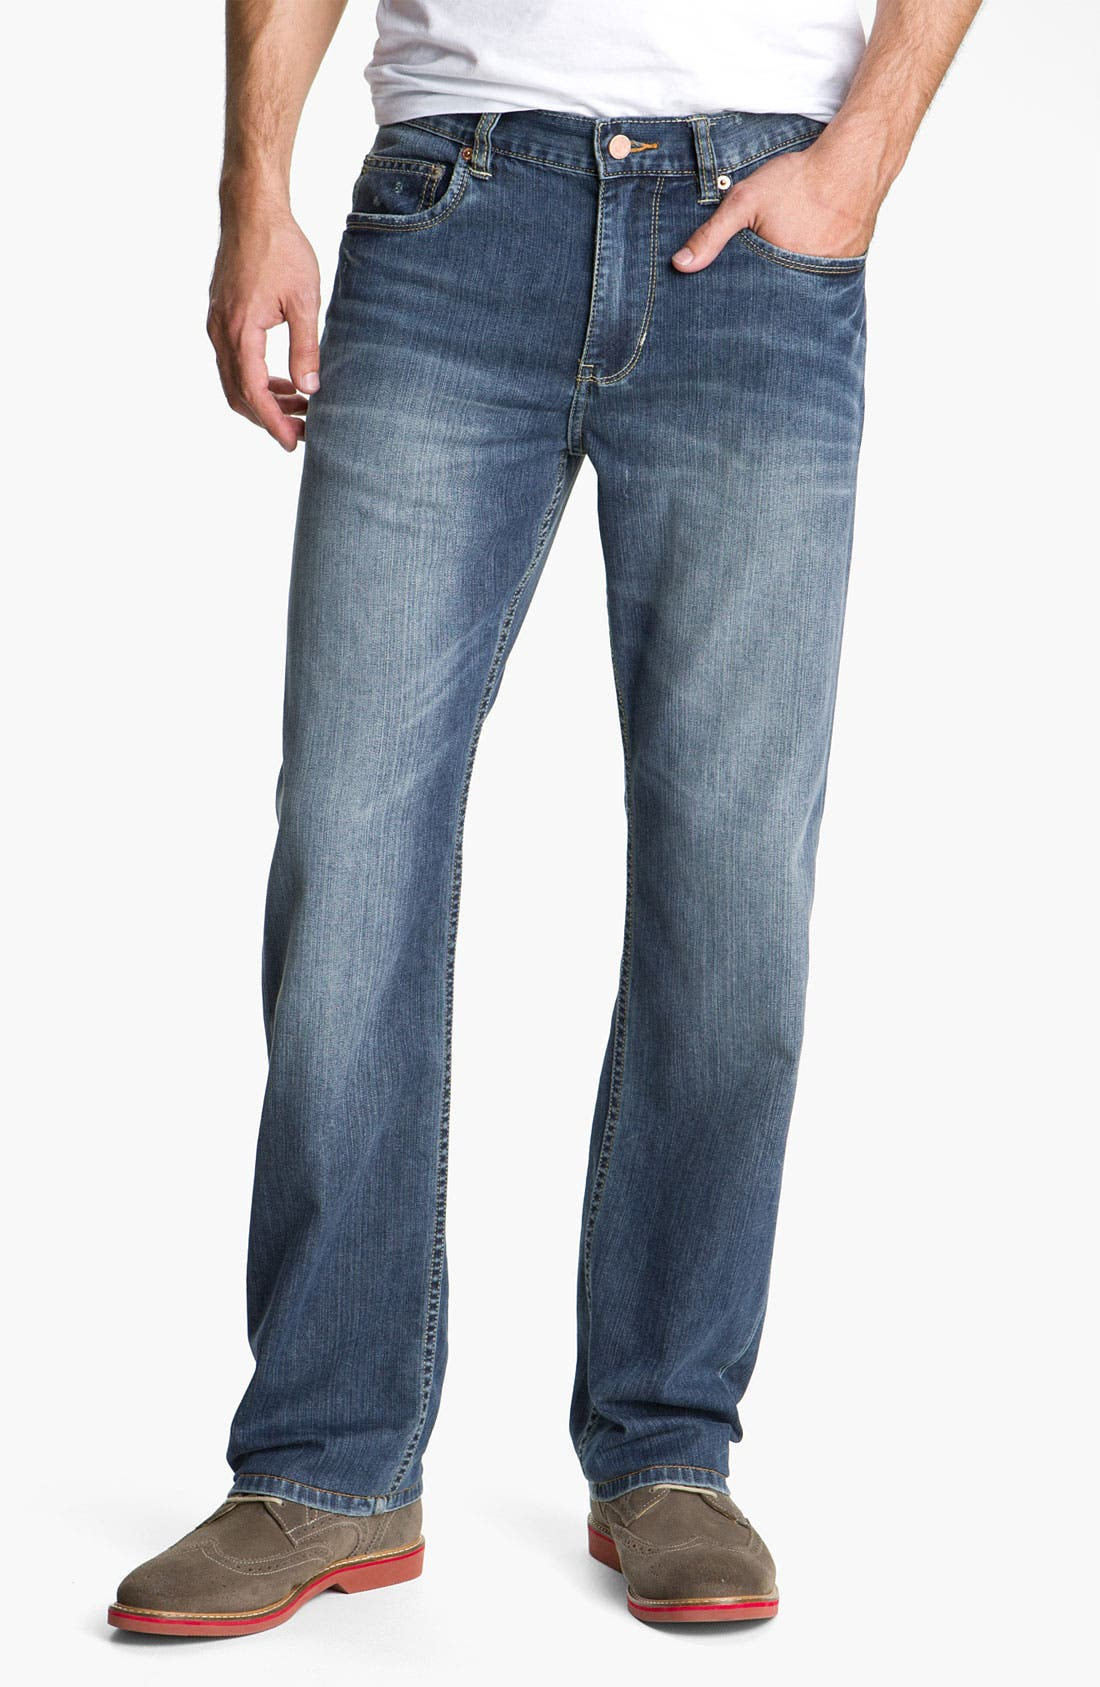 Alternate Image 1 Selected - Tommy Bahama Denim 'Dylan' Standard Fit Jeans (Vintage Medium)